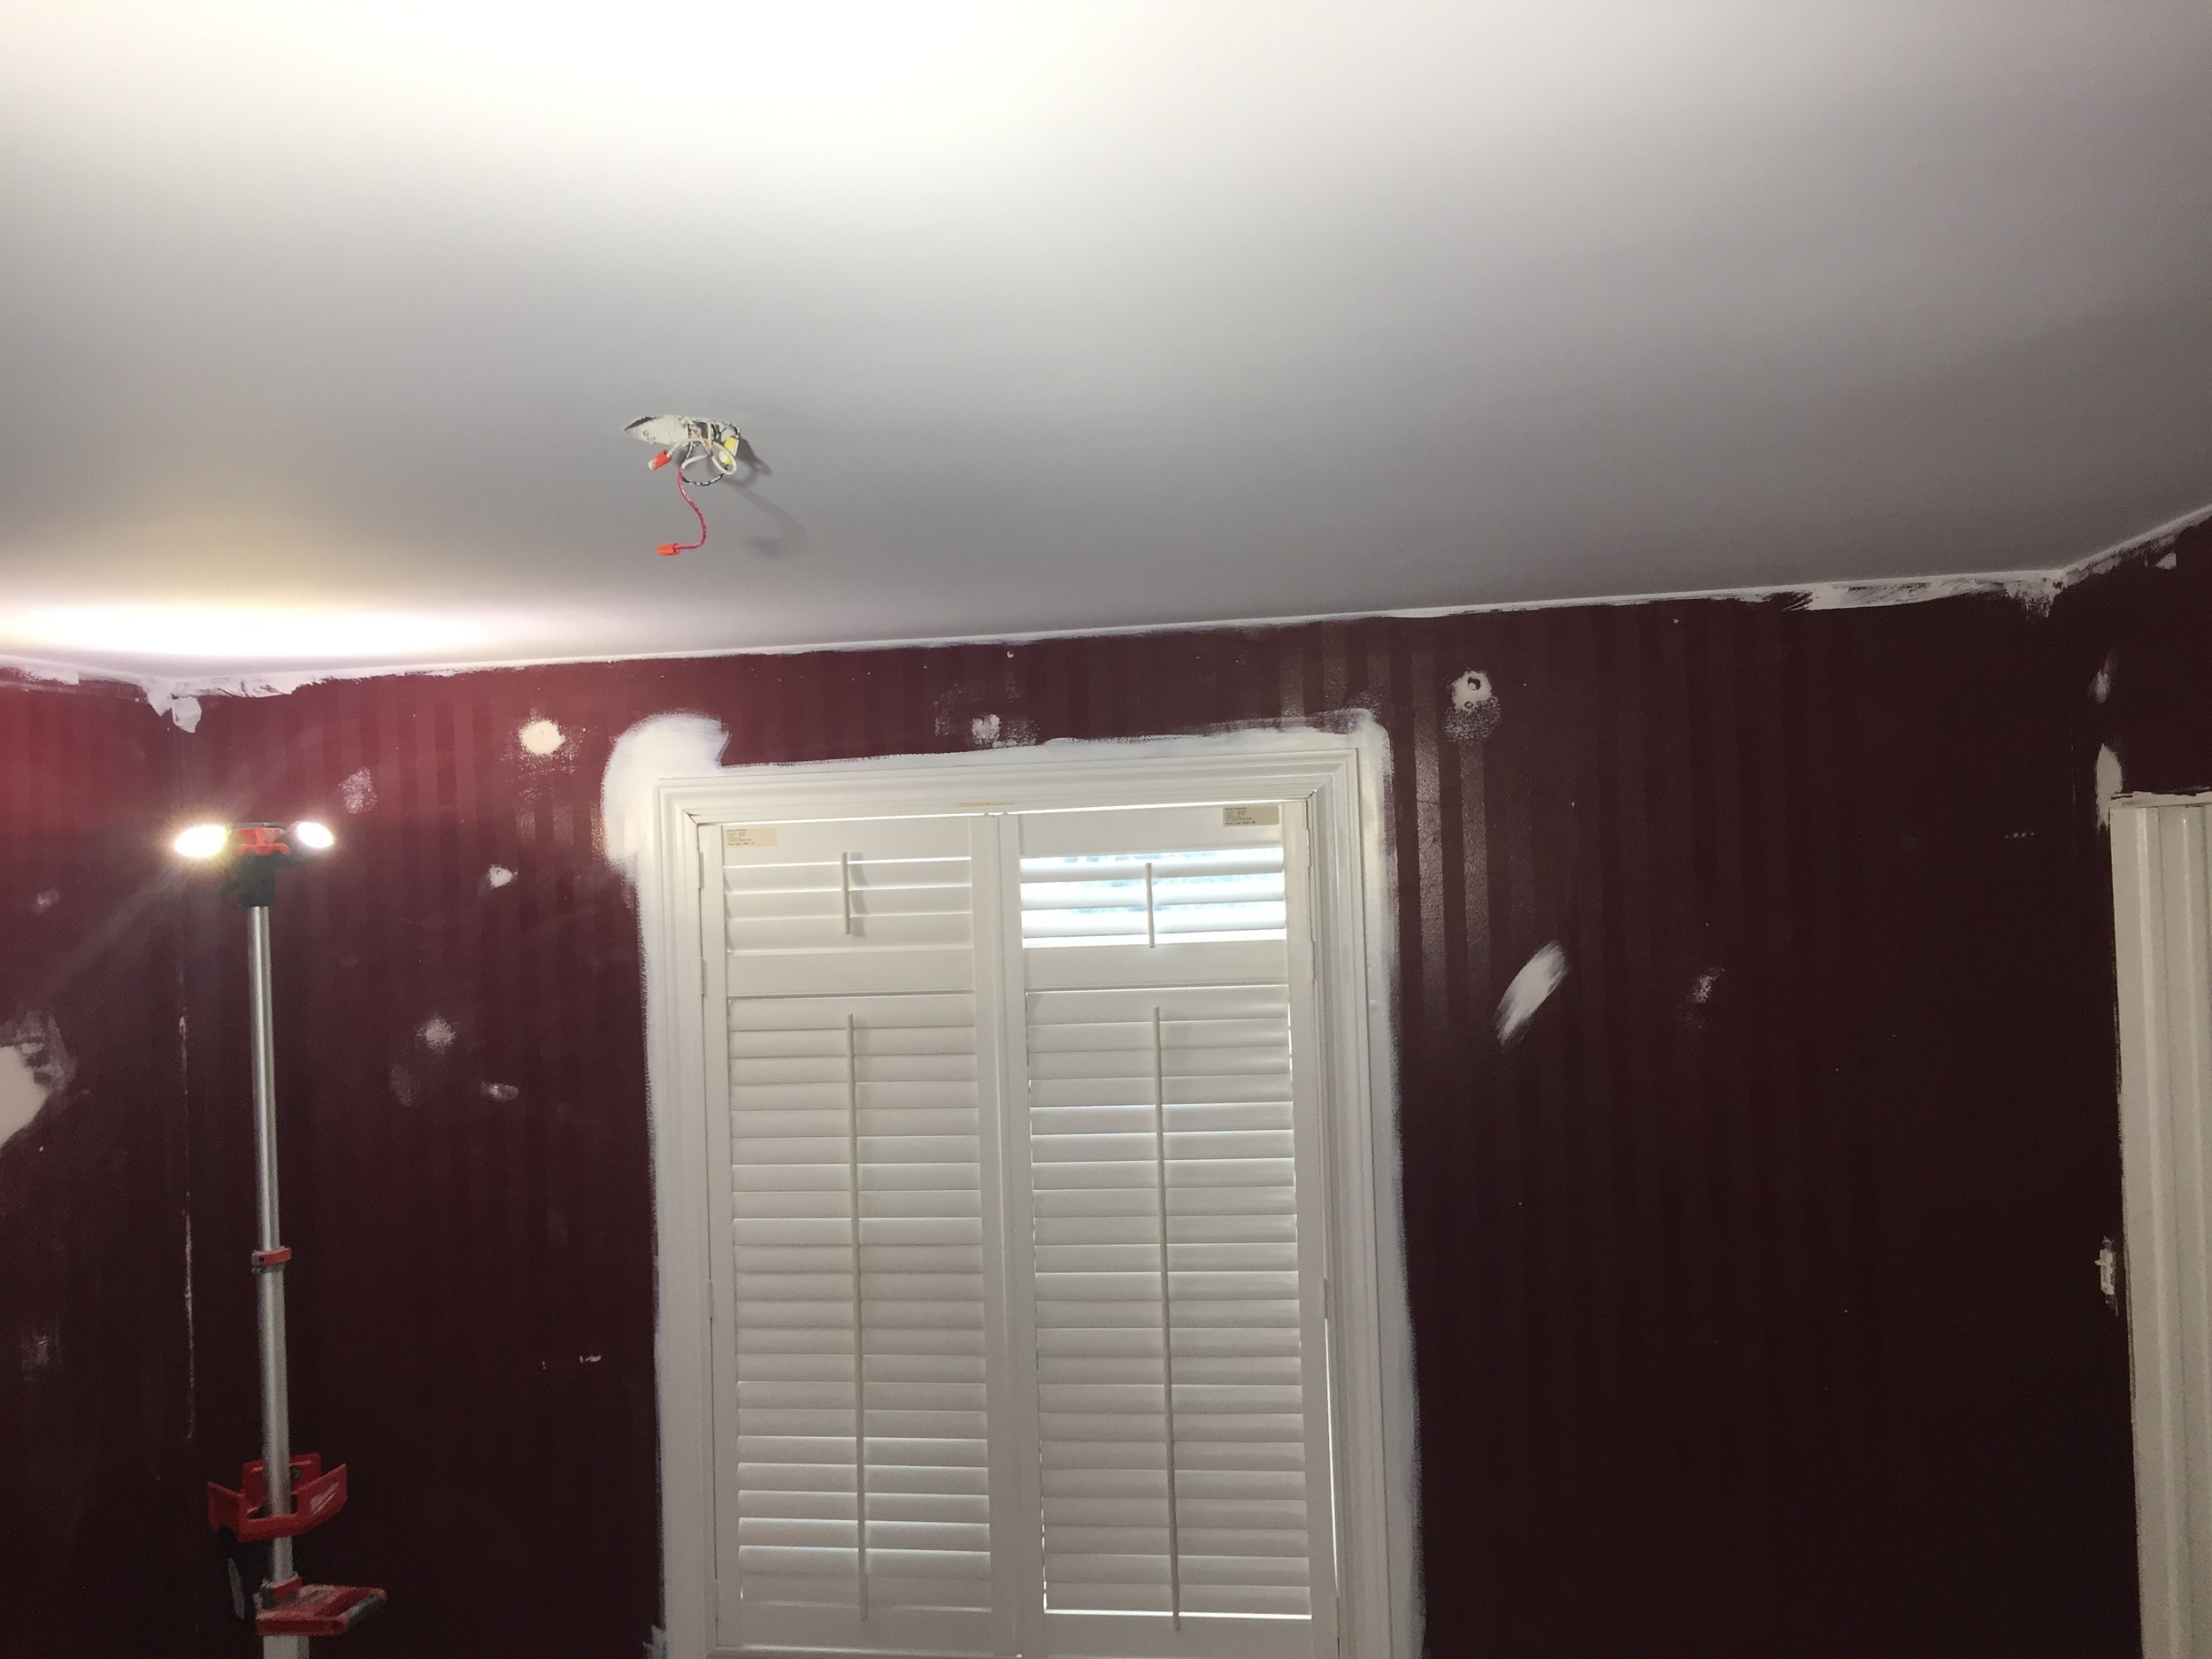 At this point the ceiling has been power sanded, has received 2 skim coats of drywall compound to ACHIEVE a smooth finish. A coat of primer is applied and we inspect every inch of the ceiling with a powerful spot light to find any imperfections.